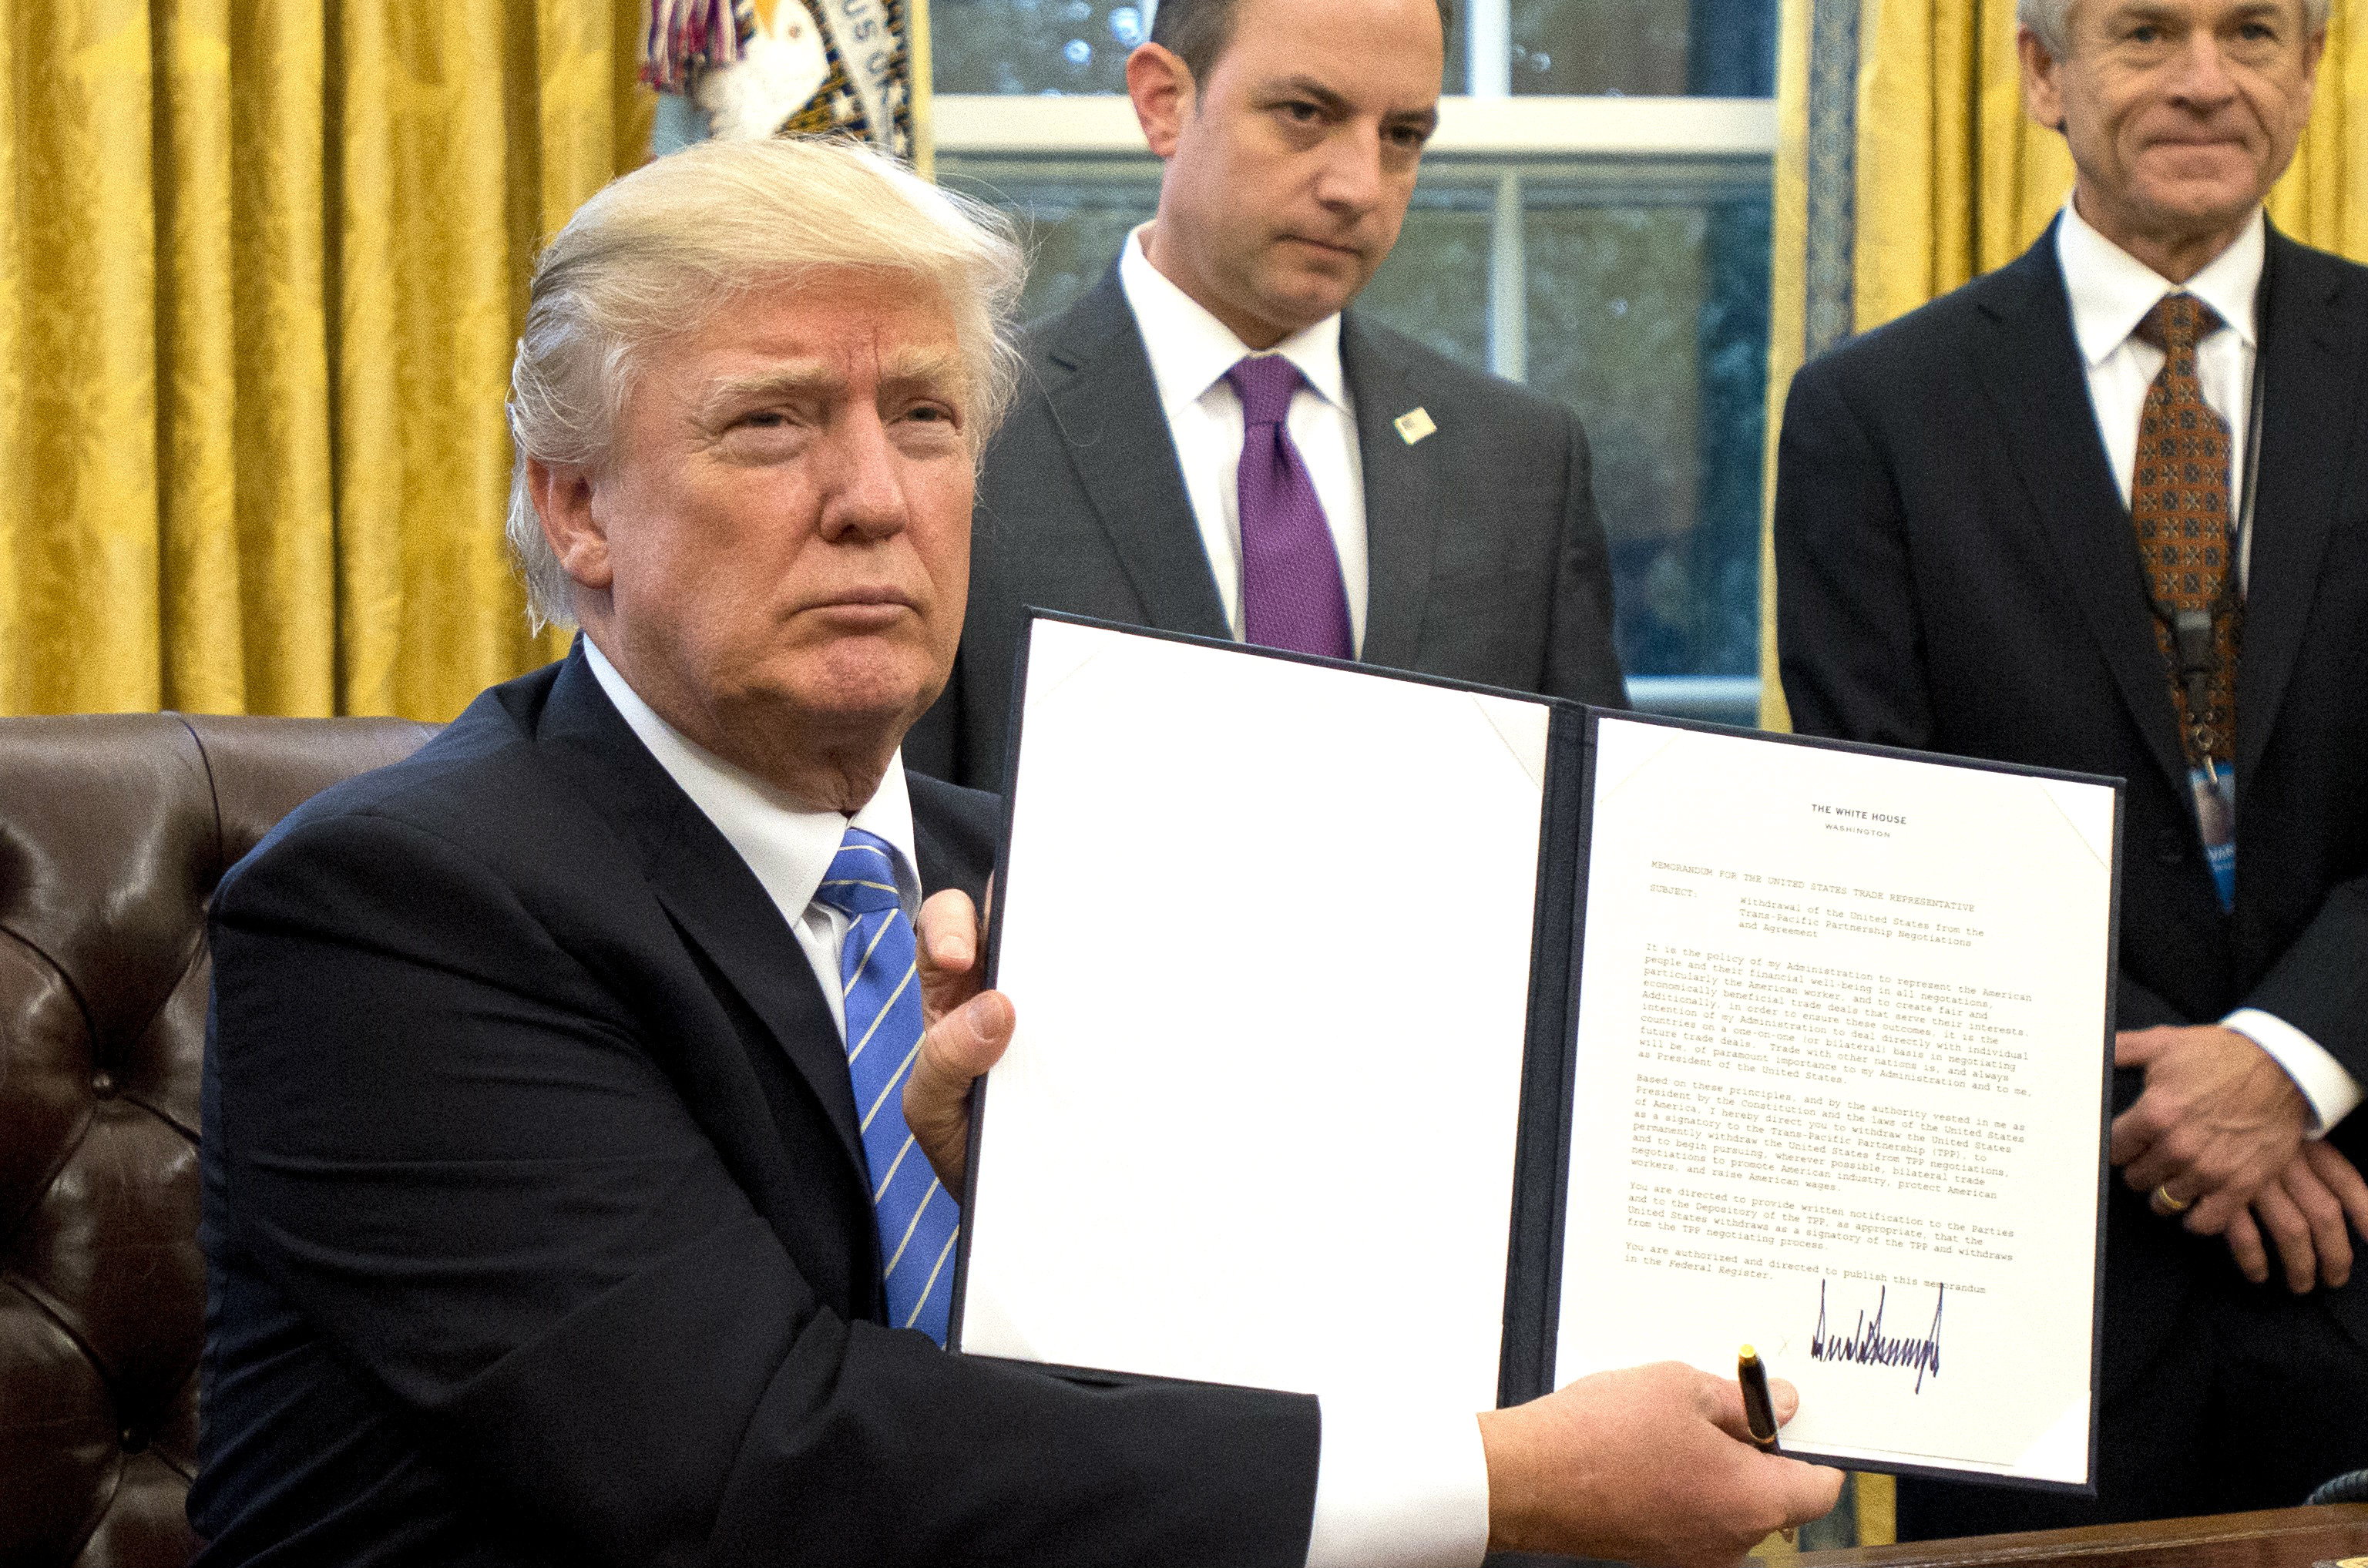 President Donald Trump shows the Executive Order withdrawing the US from the Trans-Pacific Partnership after signing it in the Oval Office of the White House in Washington, DC on Jan. 23, 2017. (Ron Sachs - Pool/Getty Images)